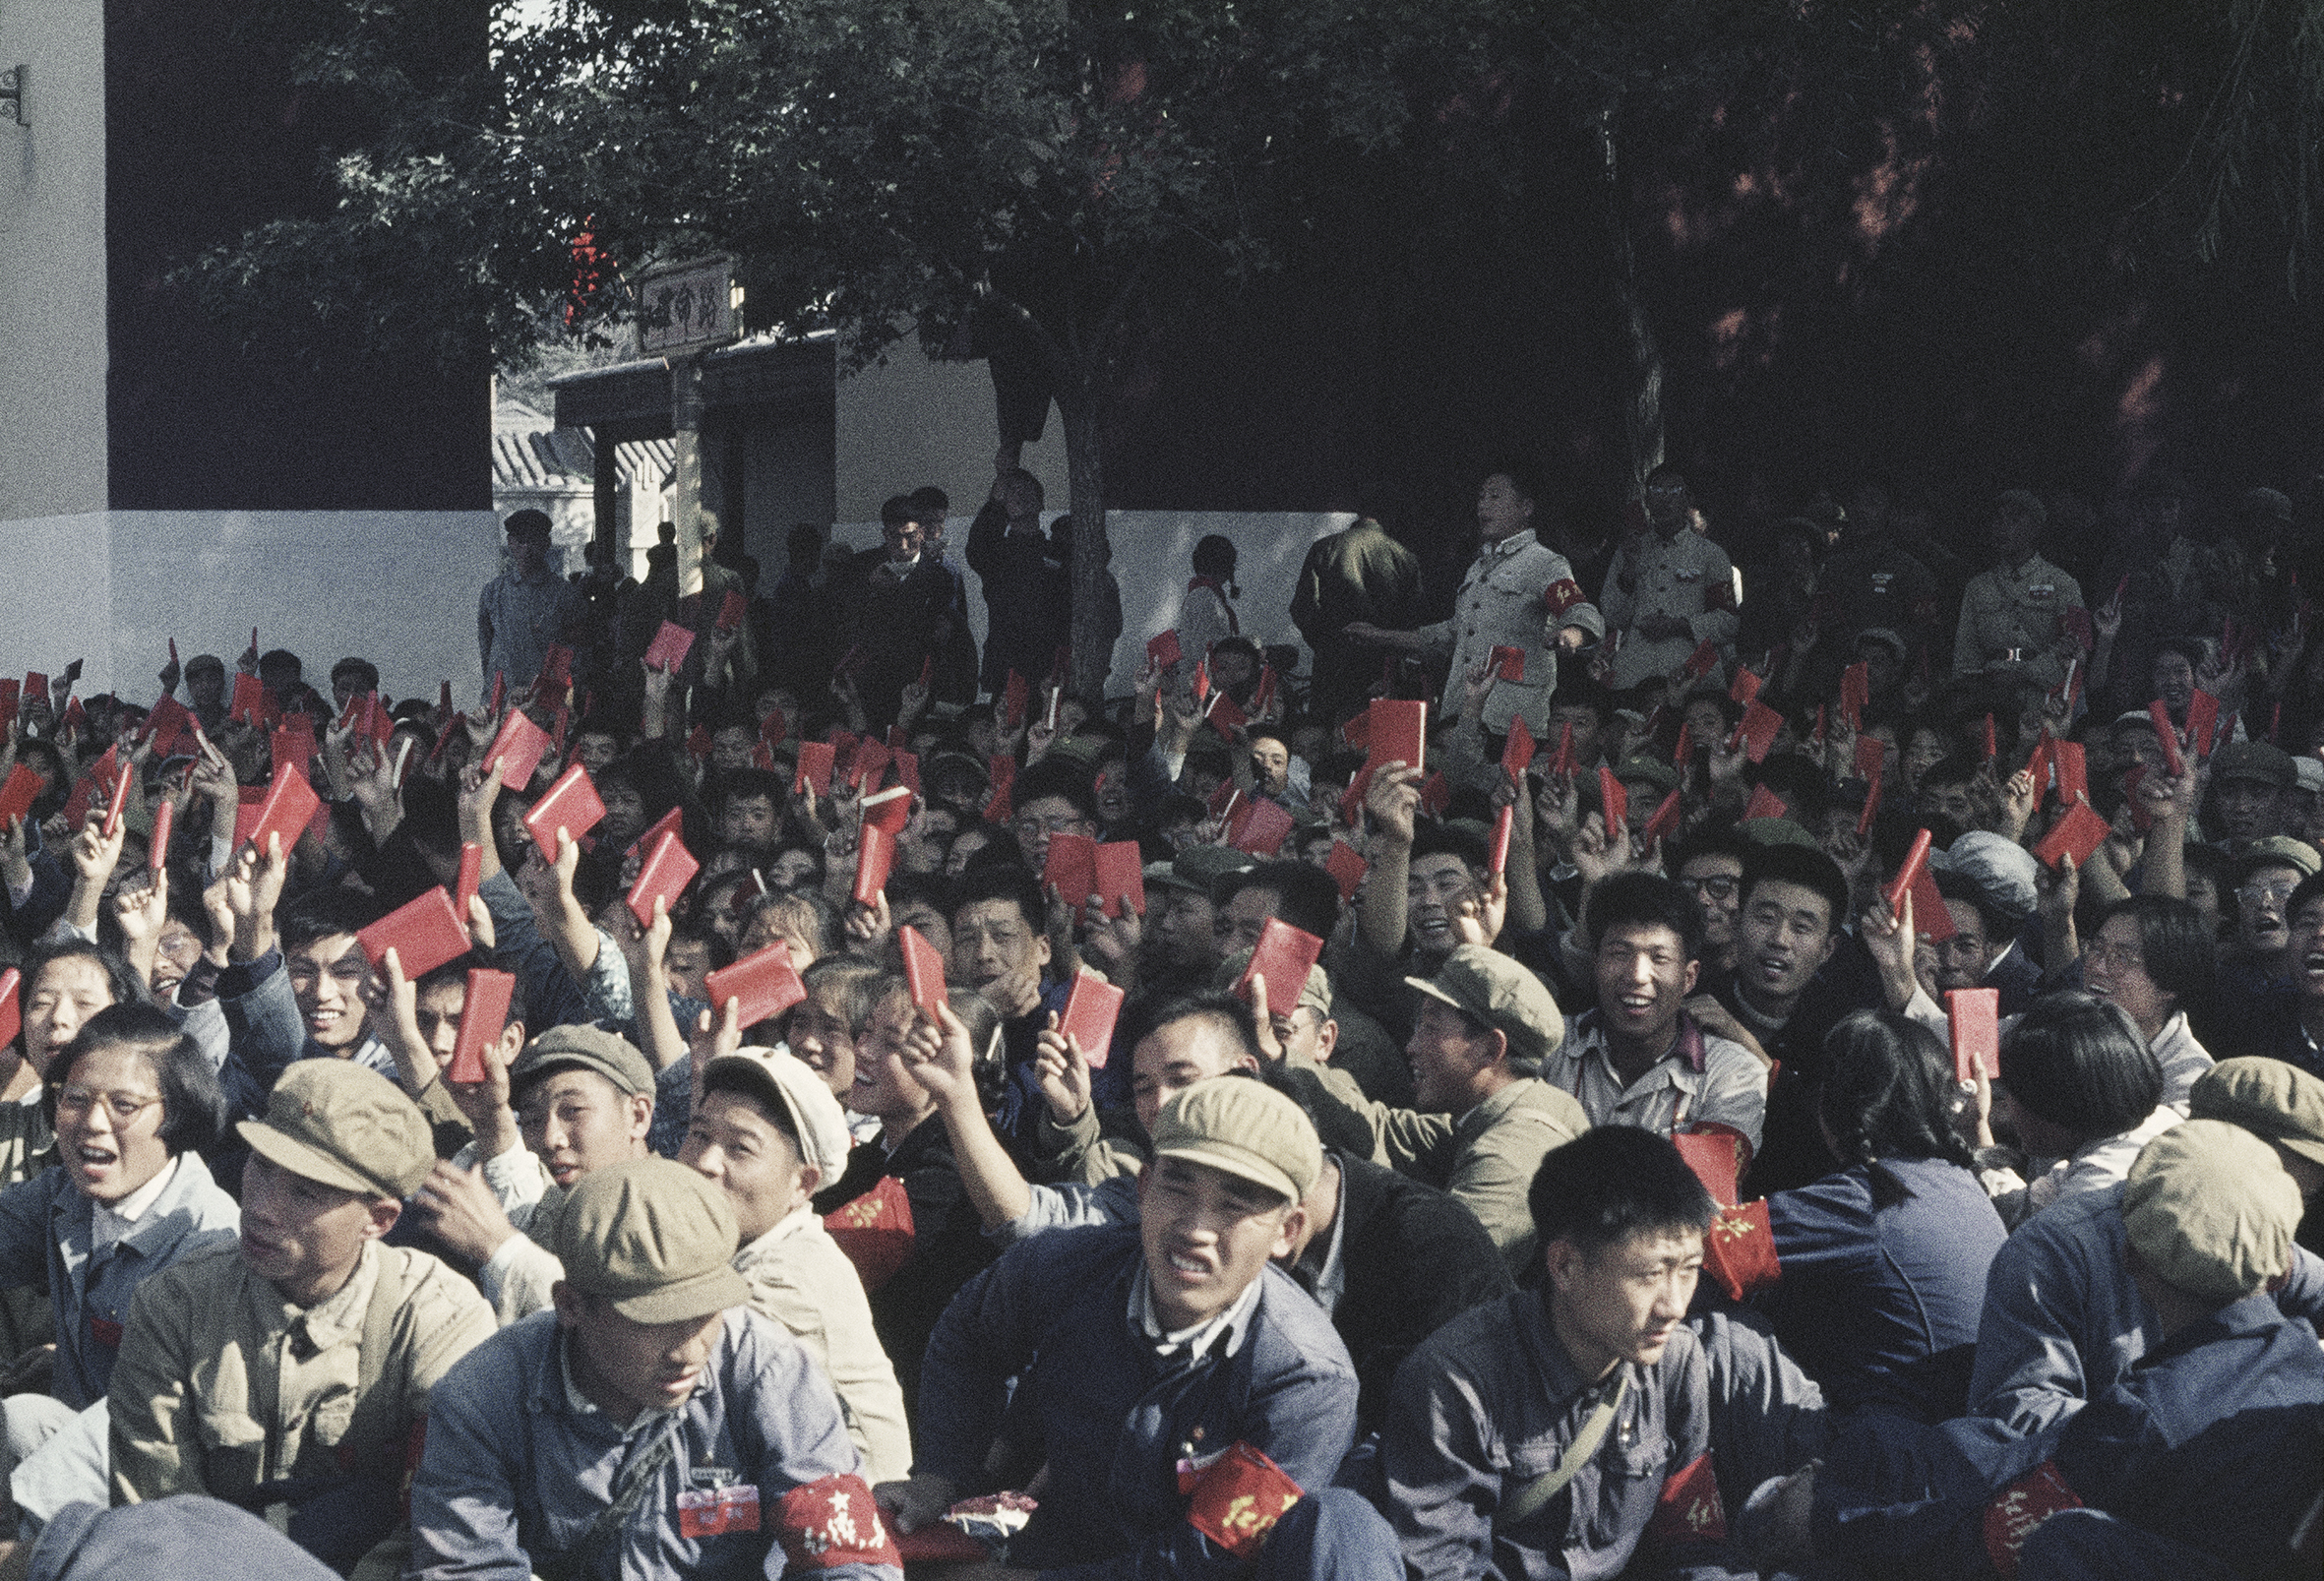 SOLANGE BRAND,  Untitled (National Day. In a Street Adjacent to Tiananmen Square, the Crowds Wait Their Turn to March), Beijing, China,  October 1, 1966